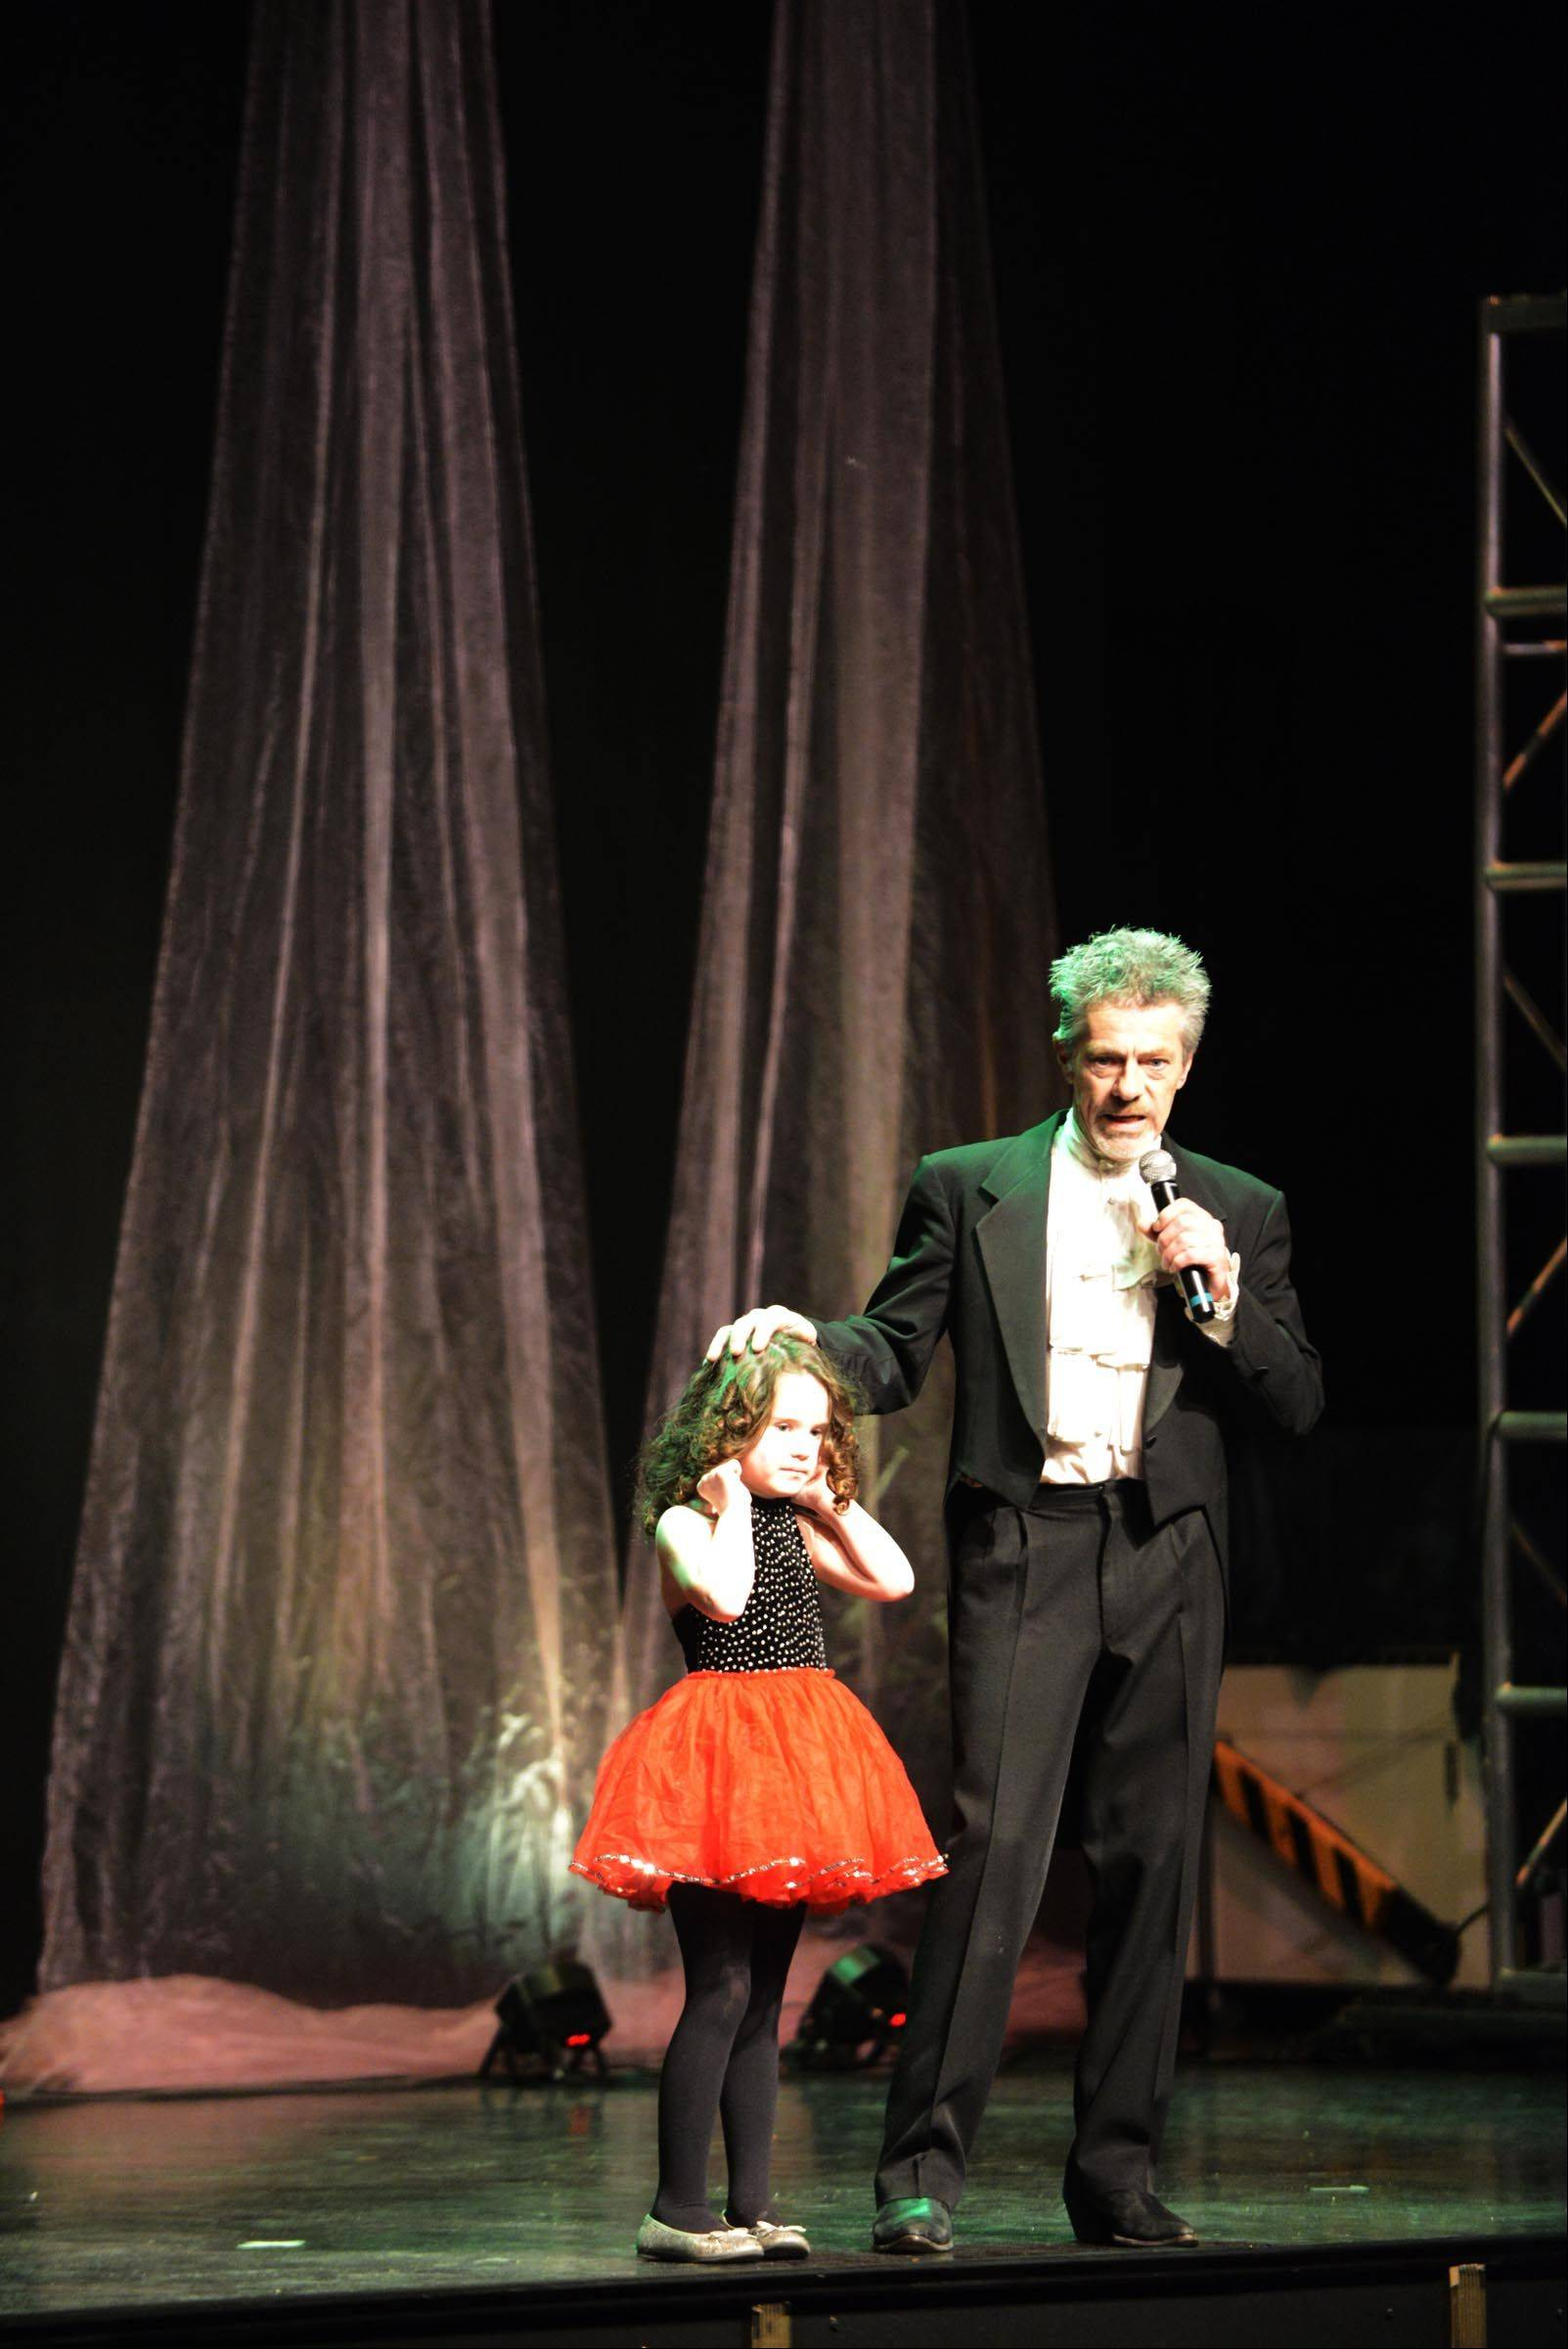 Magician Paul Lee introduces his niece Teagan Sunday onstage at the Arcada Theater in St. Charles. He was hosting the third annual Believe in Magic show, sponsored by the National Association for Down Syndrome. Teagan has Down syndrome.